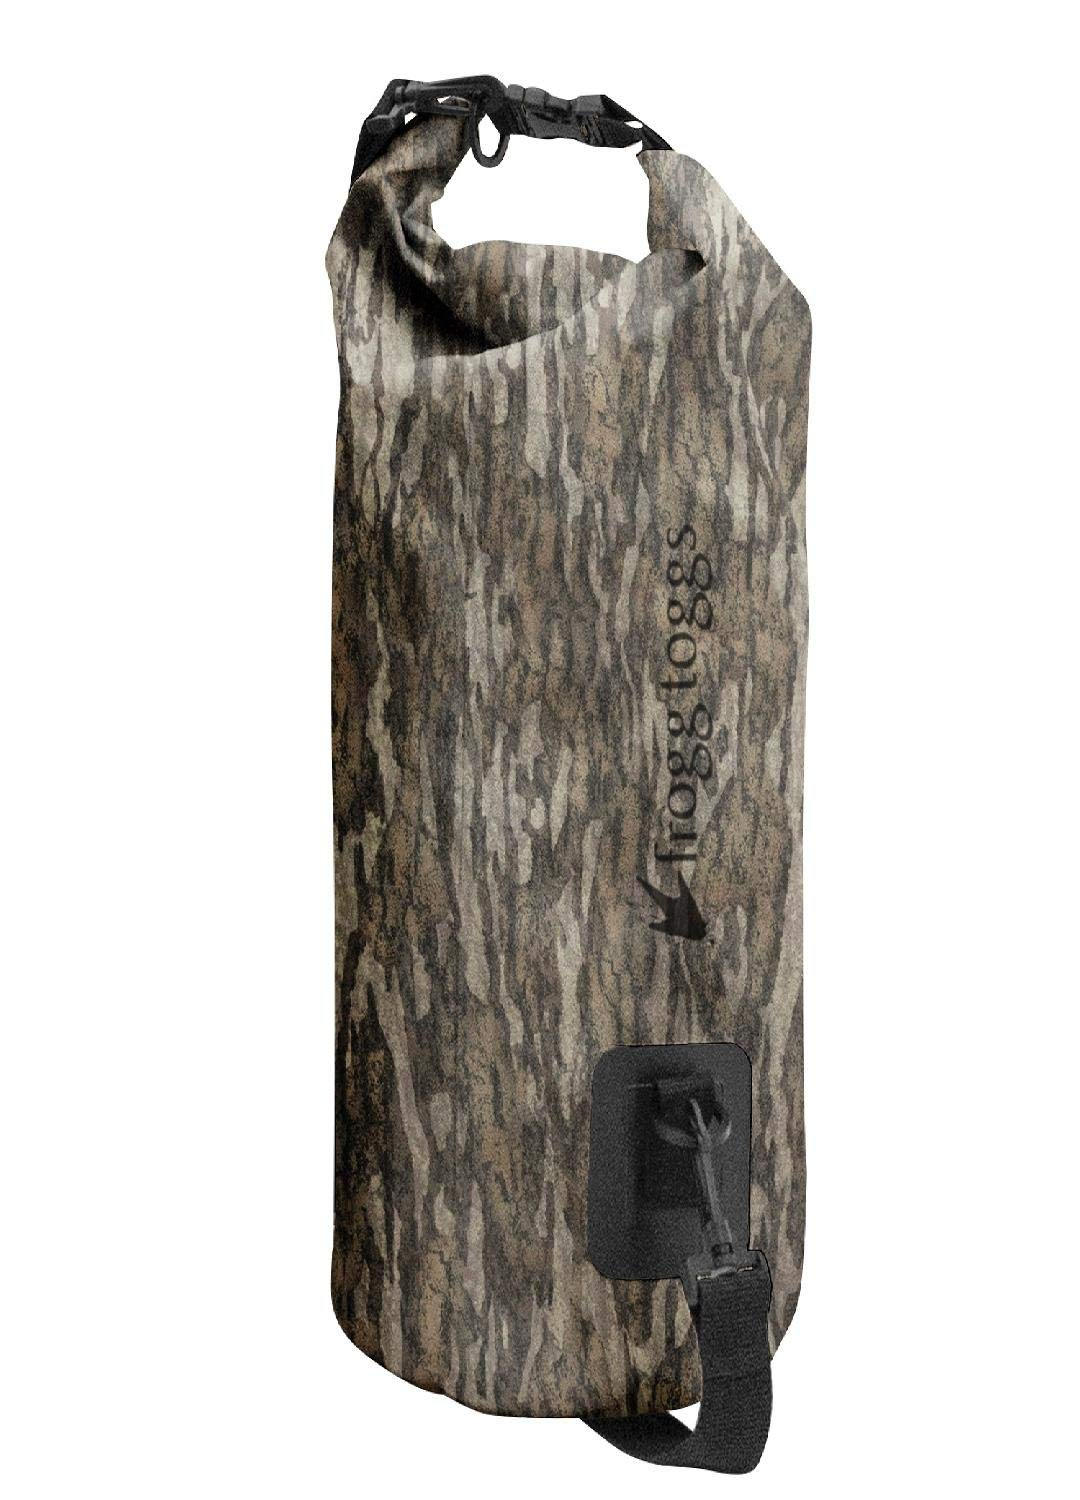 Frogg Toggs Dead Silence Brushed Camo Pullover Hoodie, Mossy Oak Bottomland, Size Small Dead Silence Brushed Camo Pullover Hoodie, Water-Resistant, Mossy Oak Bottomland, Small